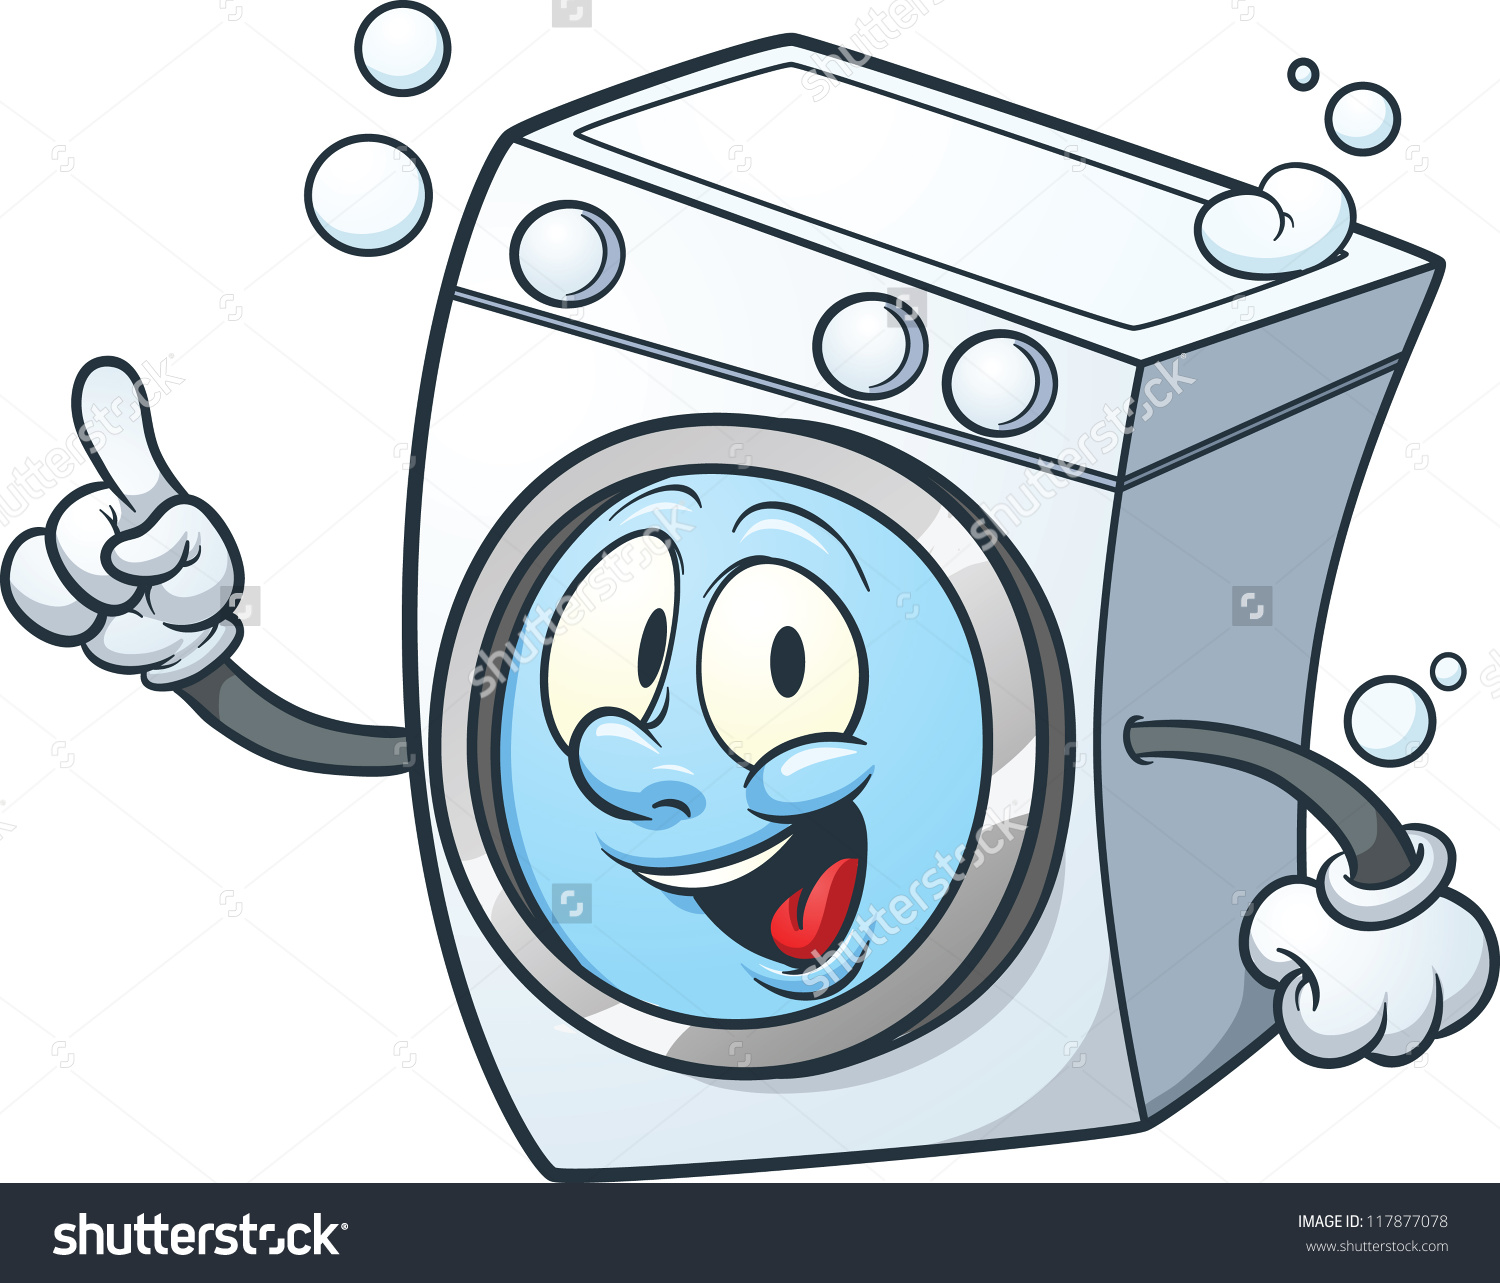 Washing machine clipart images jpg black and white Washing Machine Clip Art & Washing Machine Clip Art Clip Art ... jpg black and white